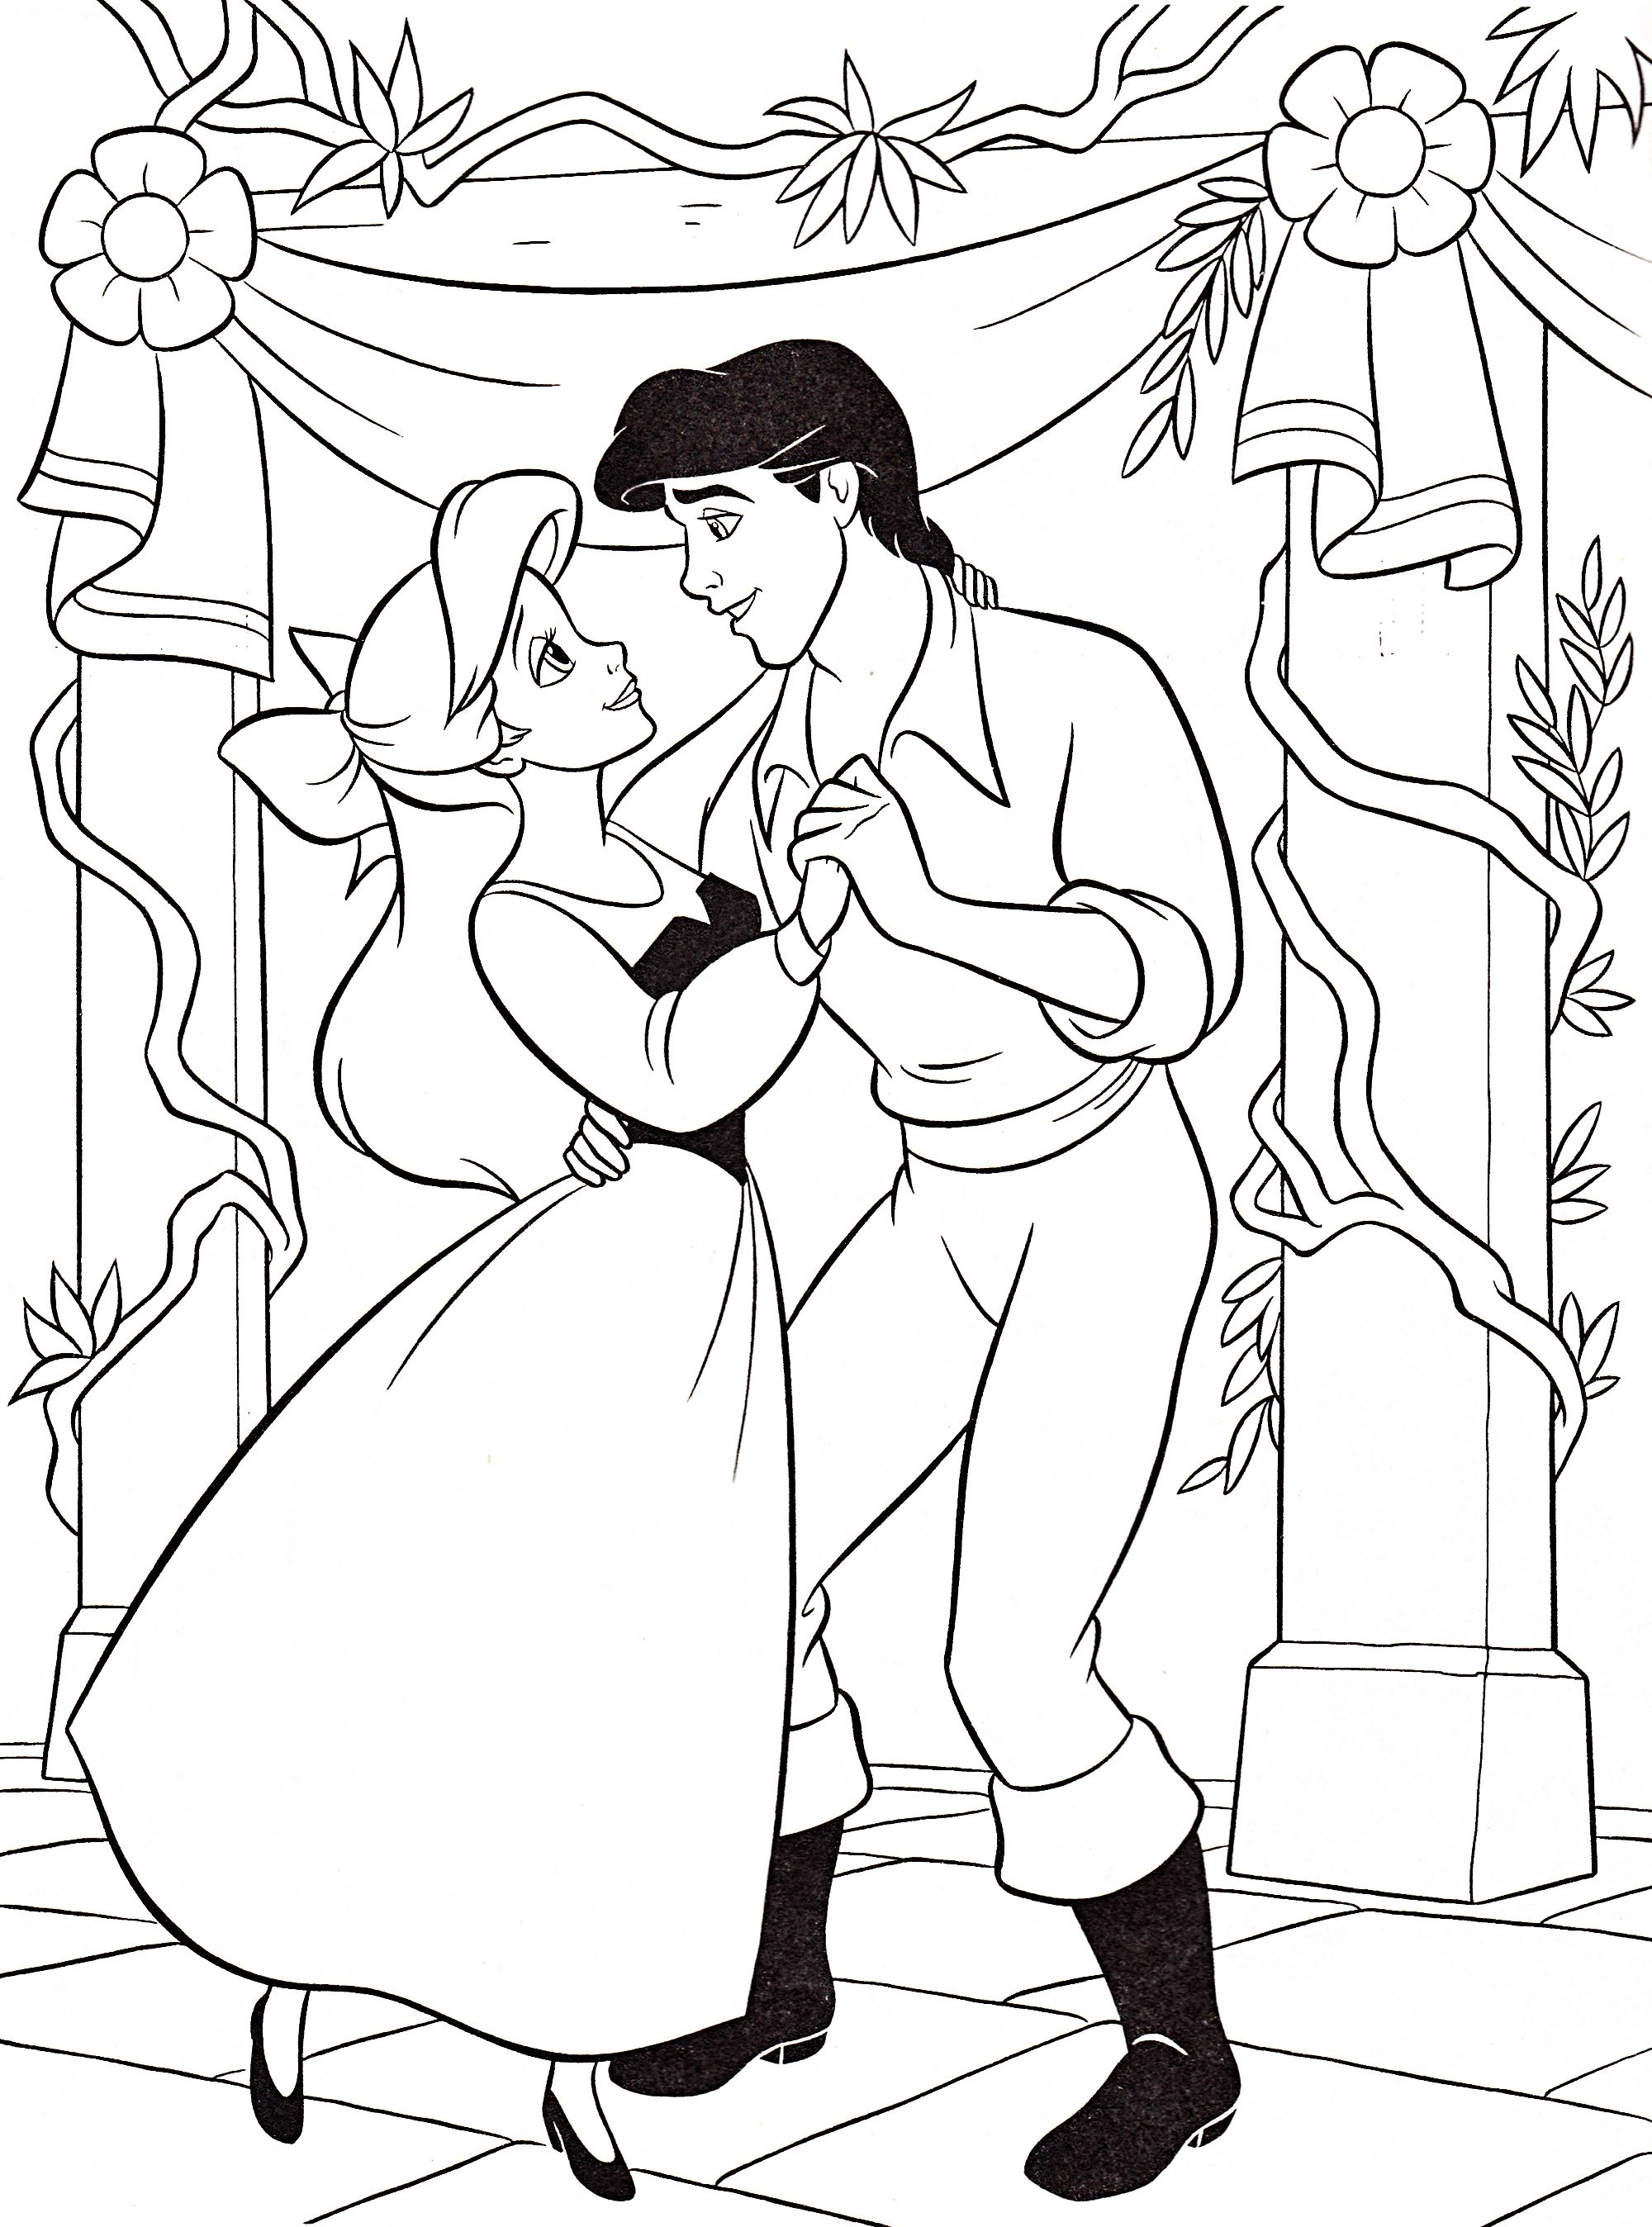 Disney princess christmas coloring pages free - Disney Tangled Coloring Pages Printable Walt Disney Characters Walt Disney Coloring Pages Princess Ariel